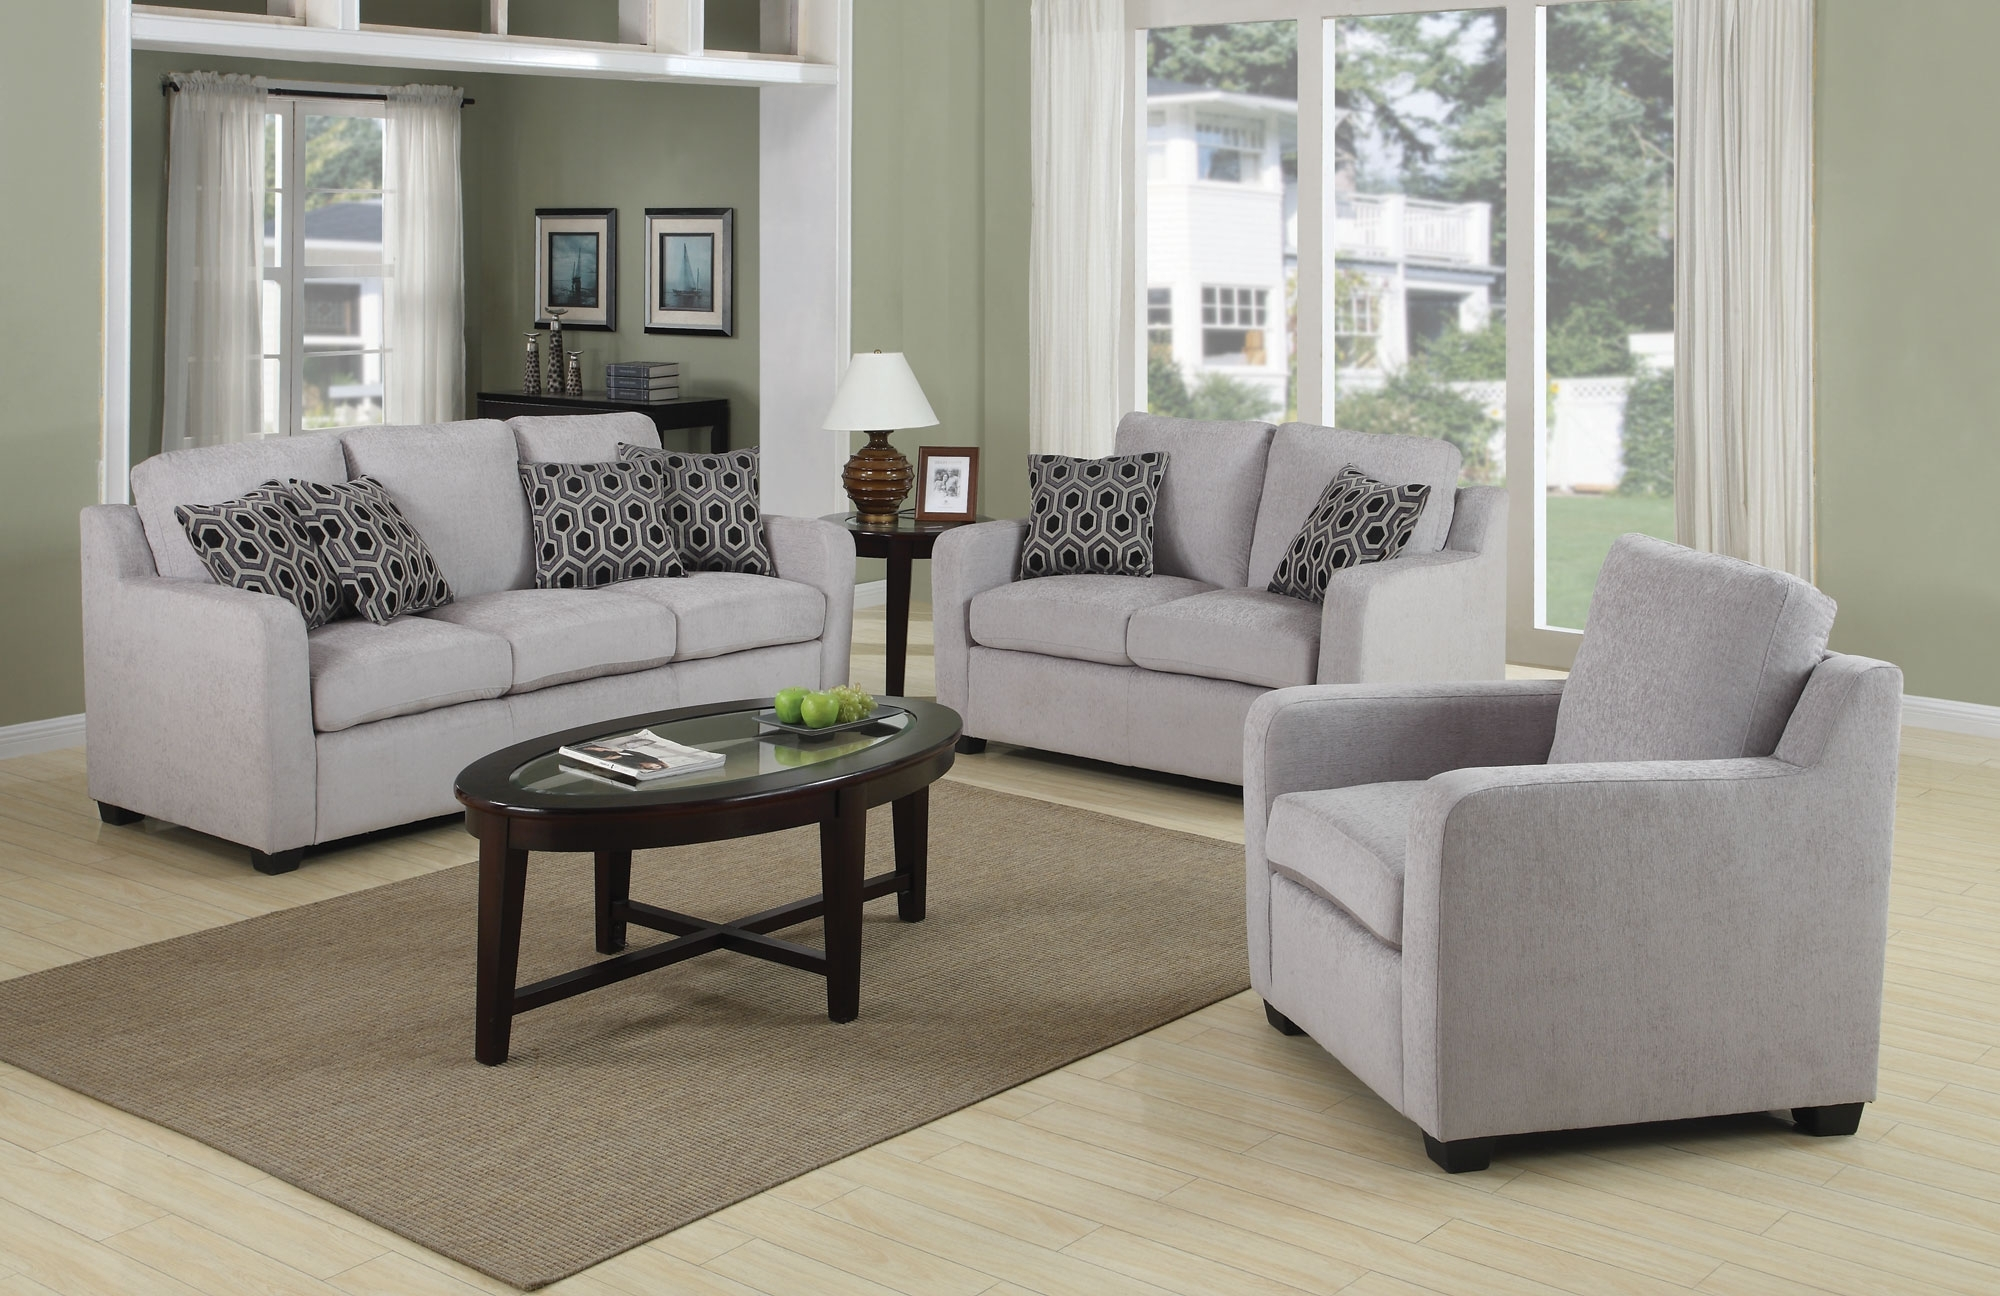 Favorite Furniture: Amazing Set Of Chairs For Living Room 3 Piece Living Within Sofa Chairs For Living Room (View 4 of 15)